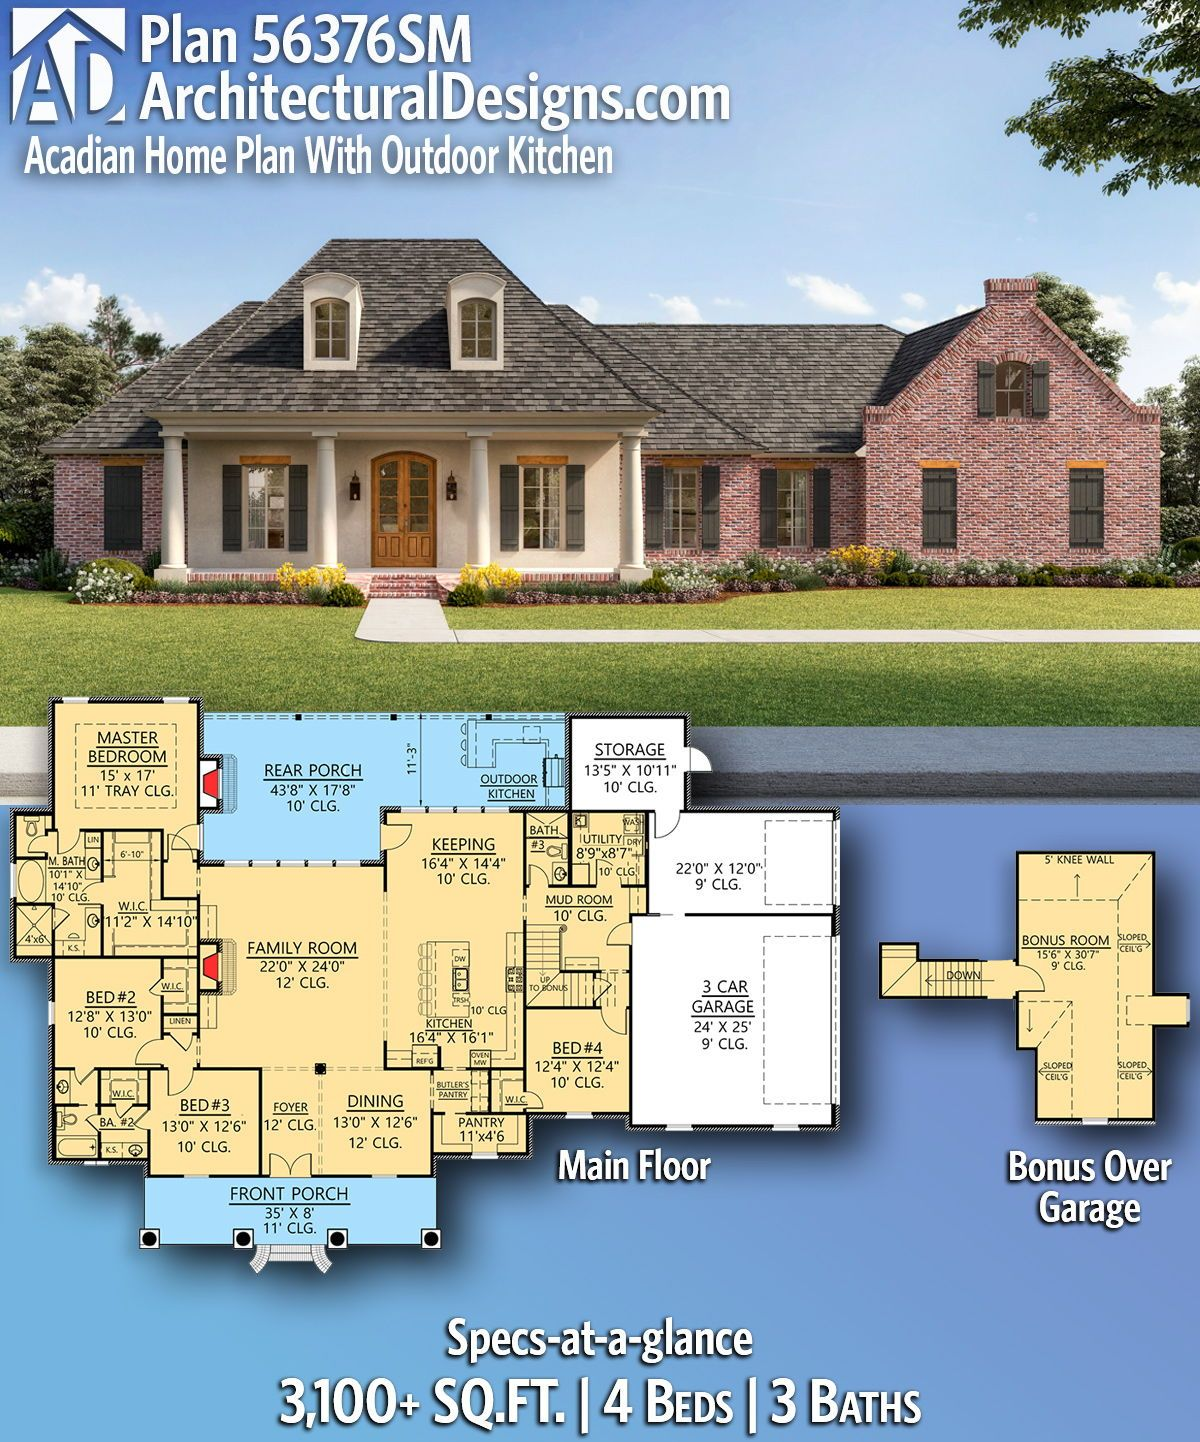 Plan 56376sm Acadian Home Plan With Outdoor Kitchen Acadian Homes House Plans Single Story House Floor Plans